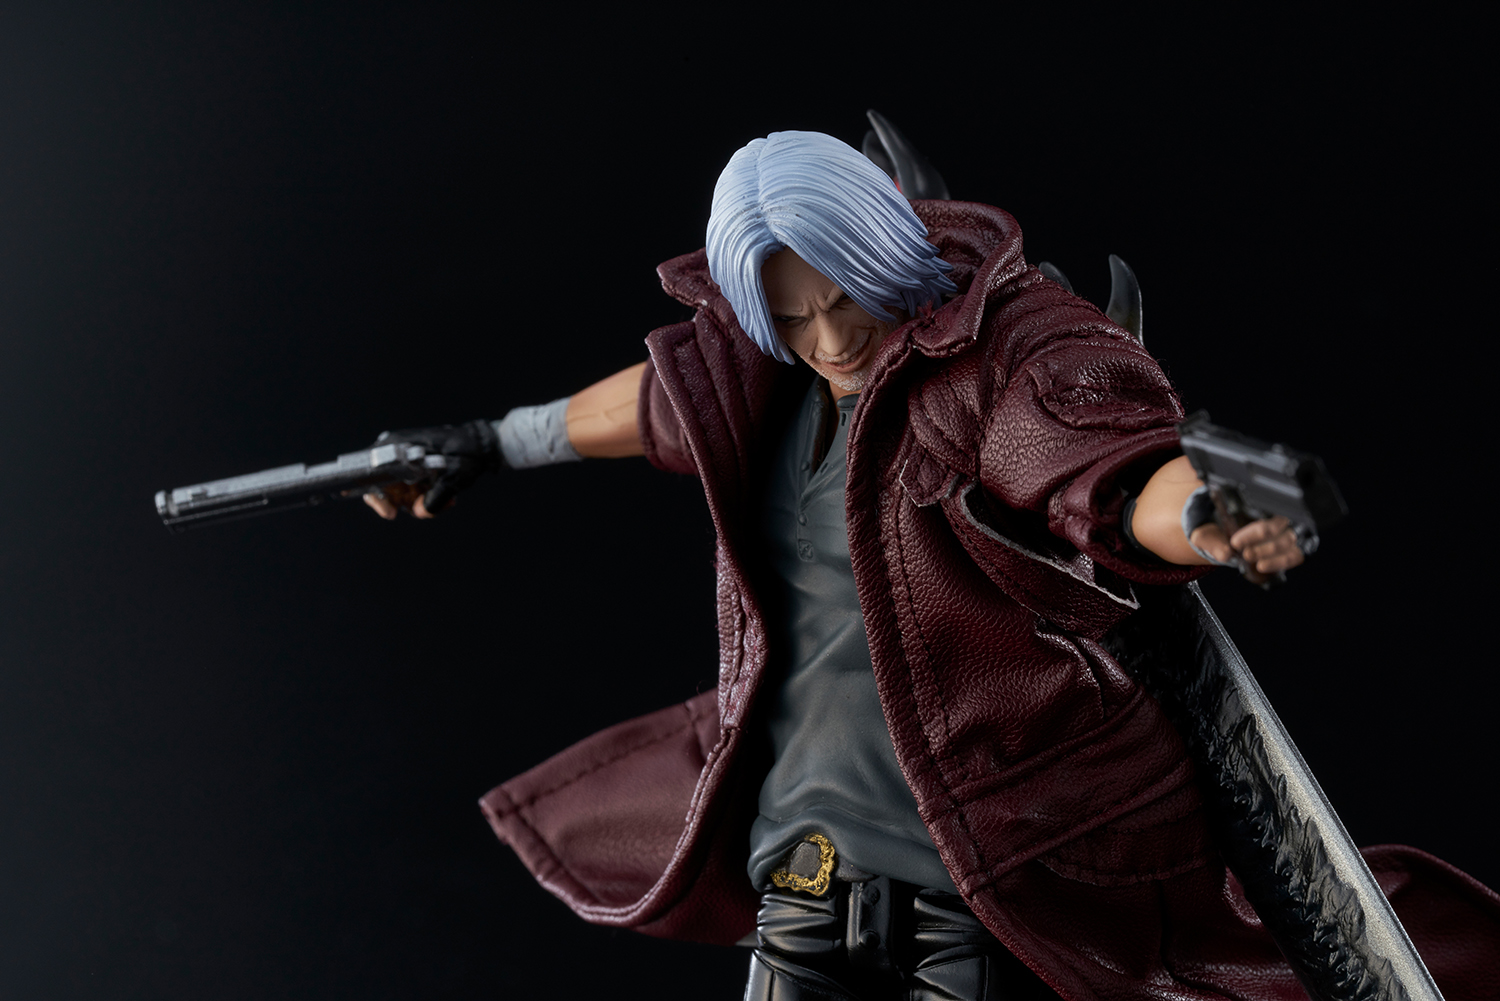 Devil May Cry 5 Dante PX DLX Version IN STOCK 1000 Toys • NEW /& OFFICIAL •